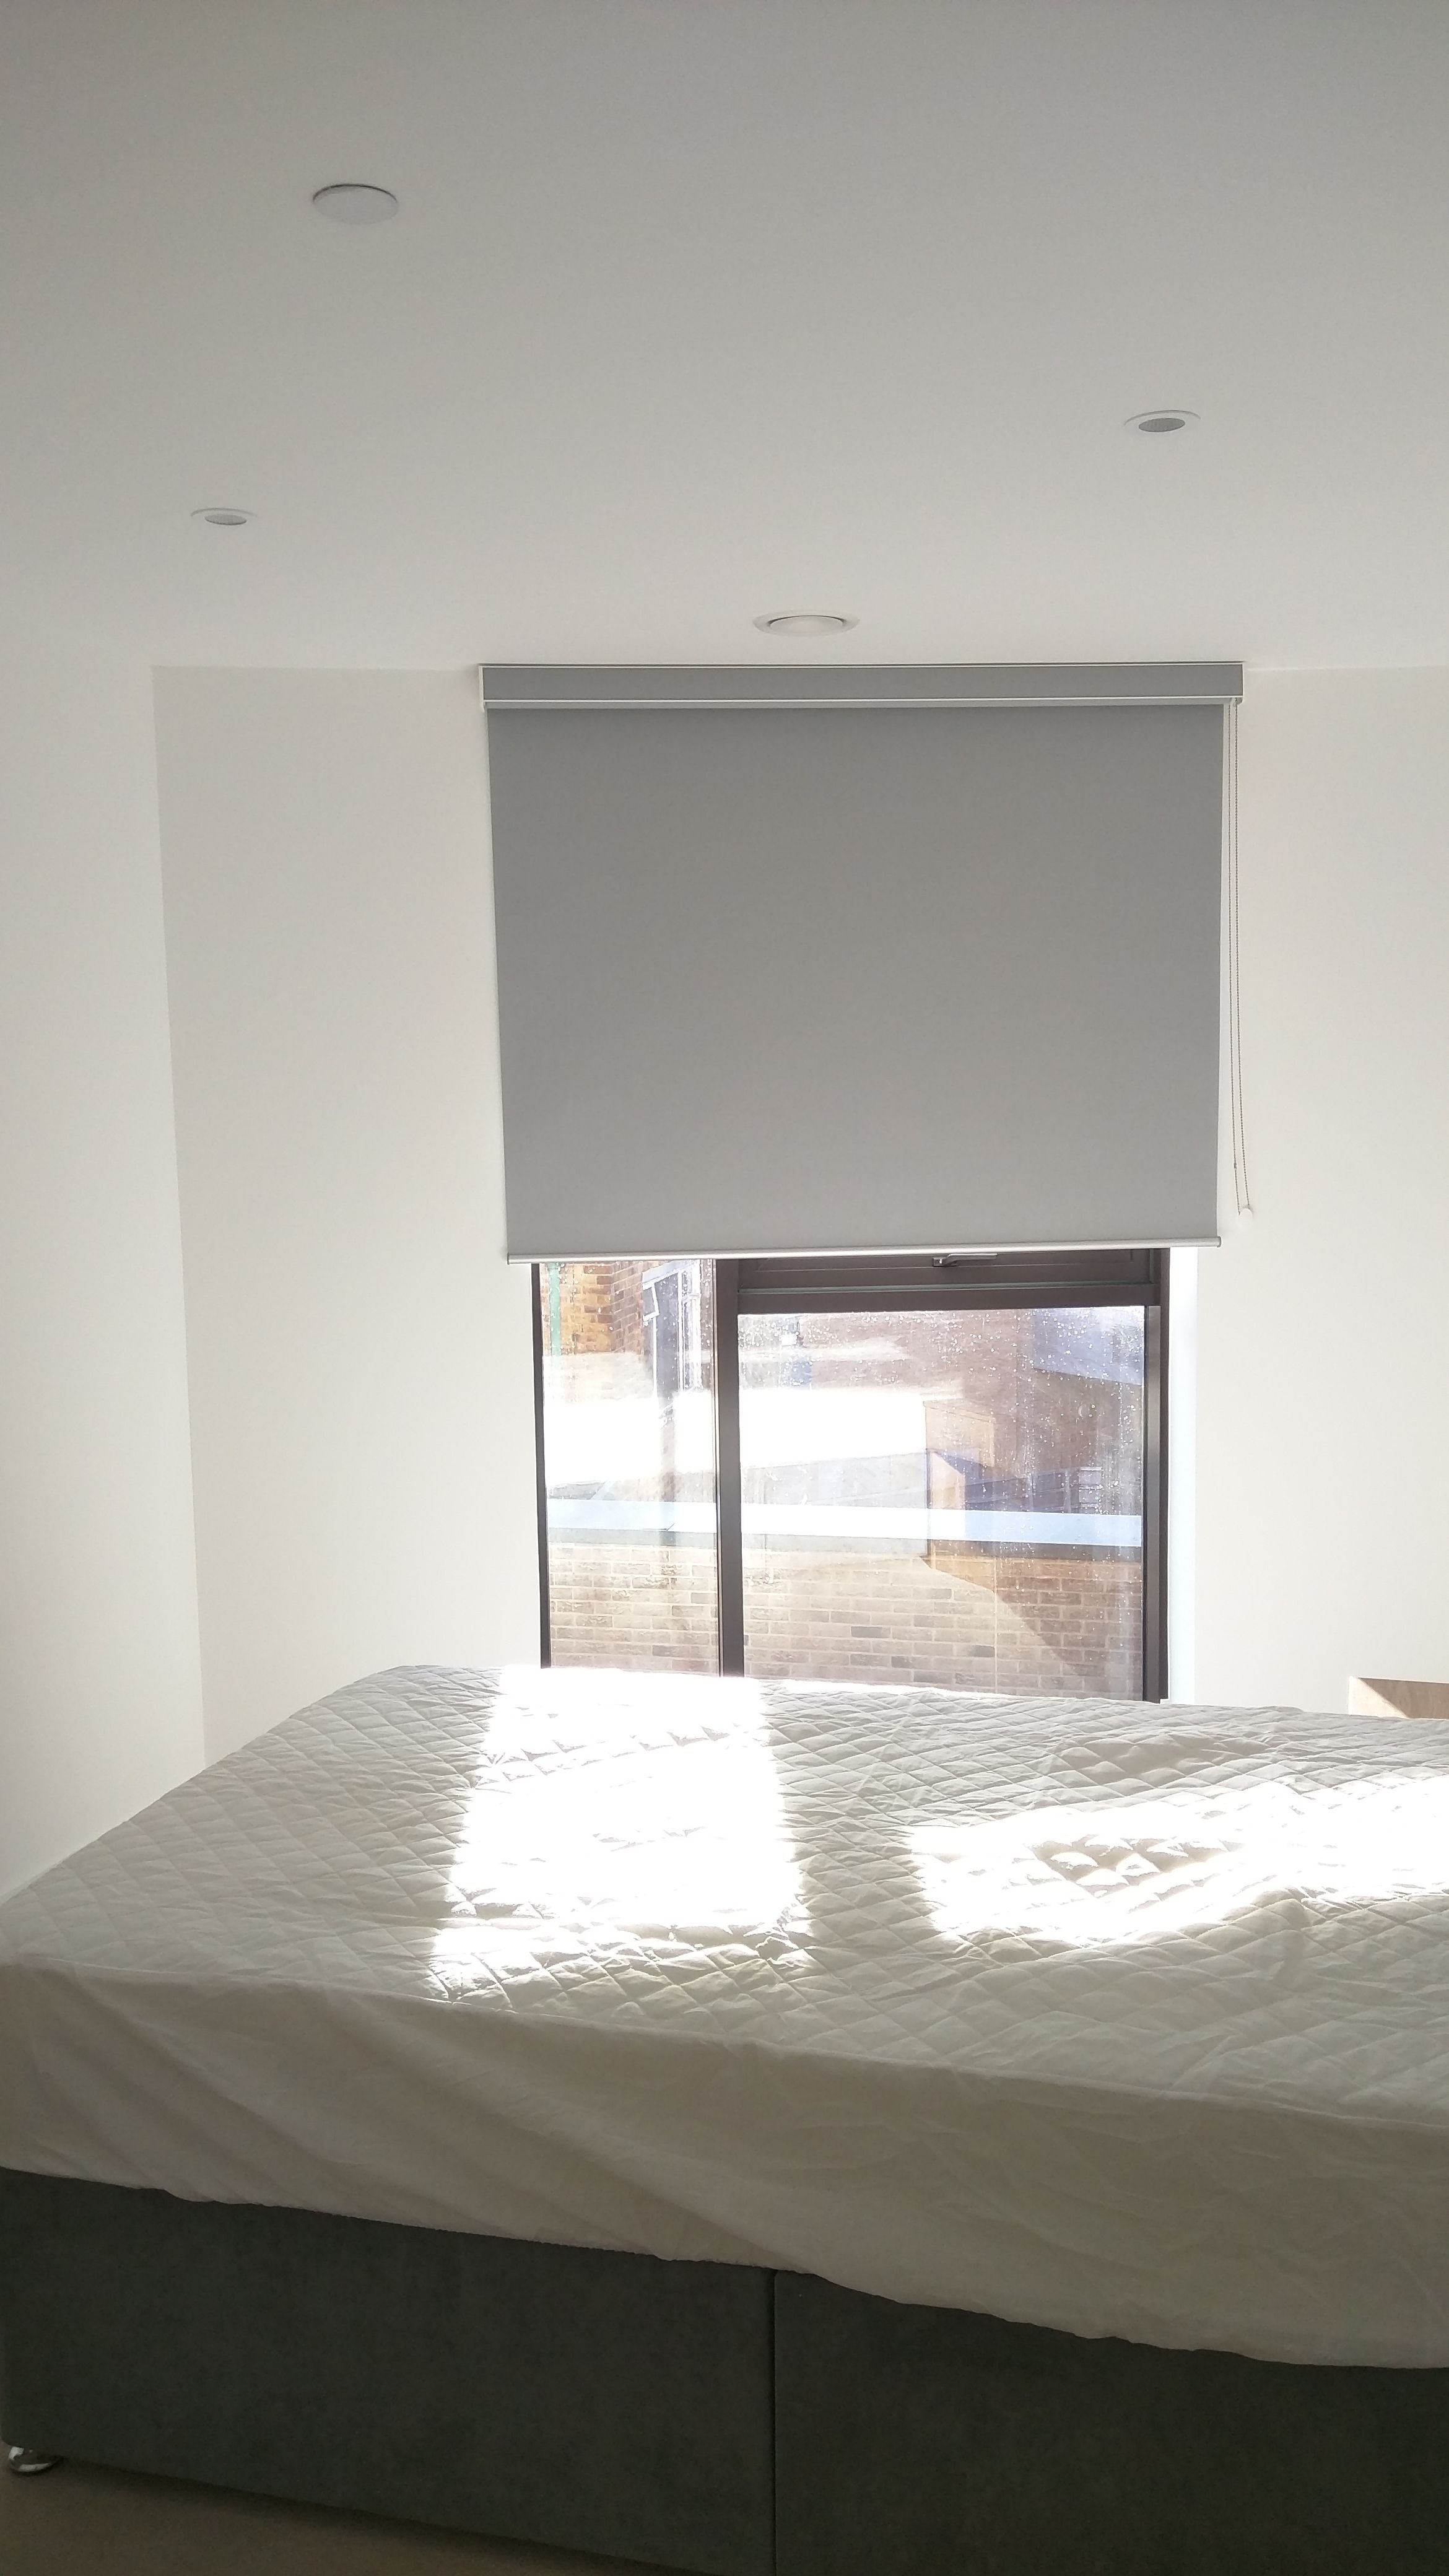 Blackout Roller Blind With Matching Pelmet Fitted Outside The Recess